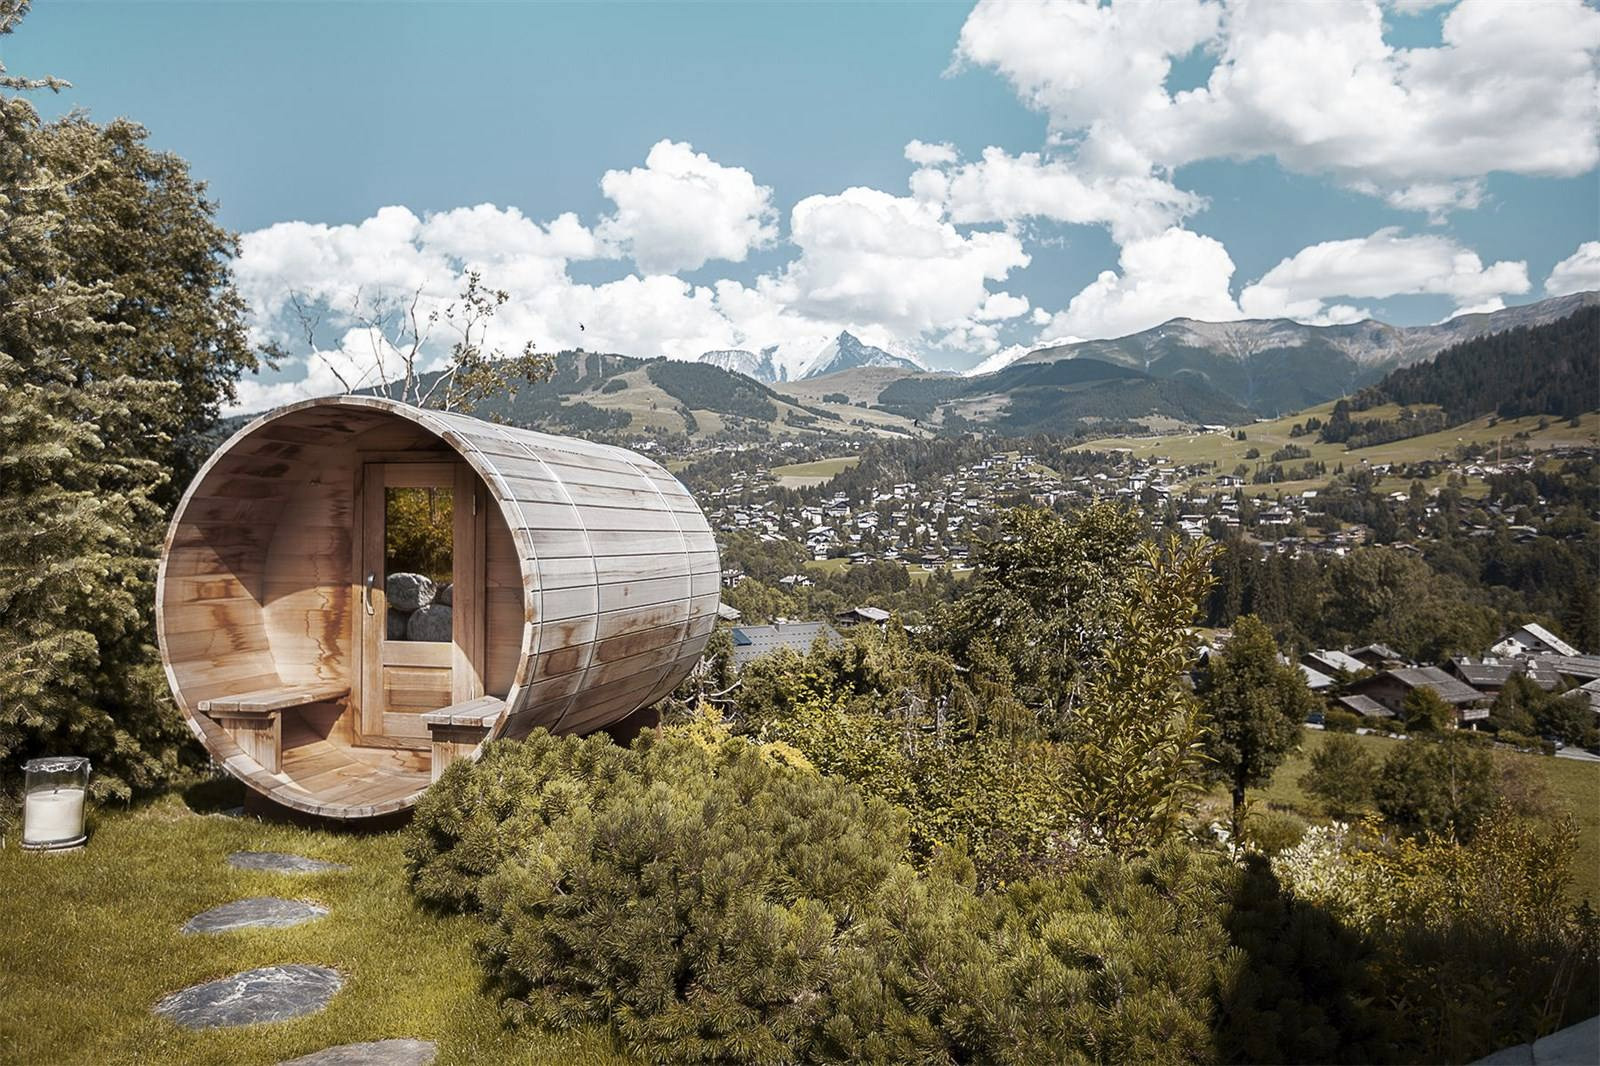 Chalet sauna with views of Mount Blanc